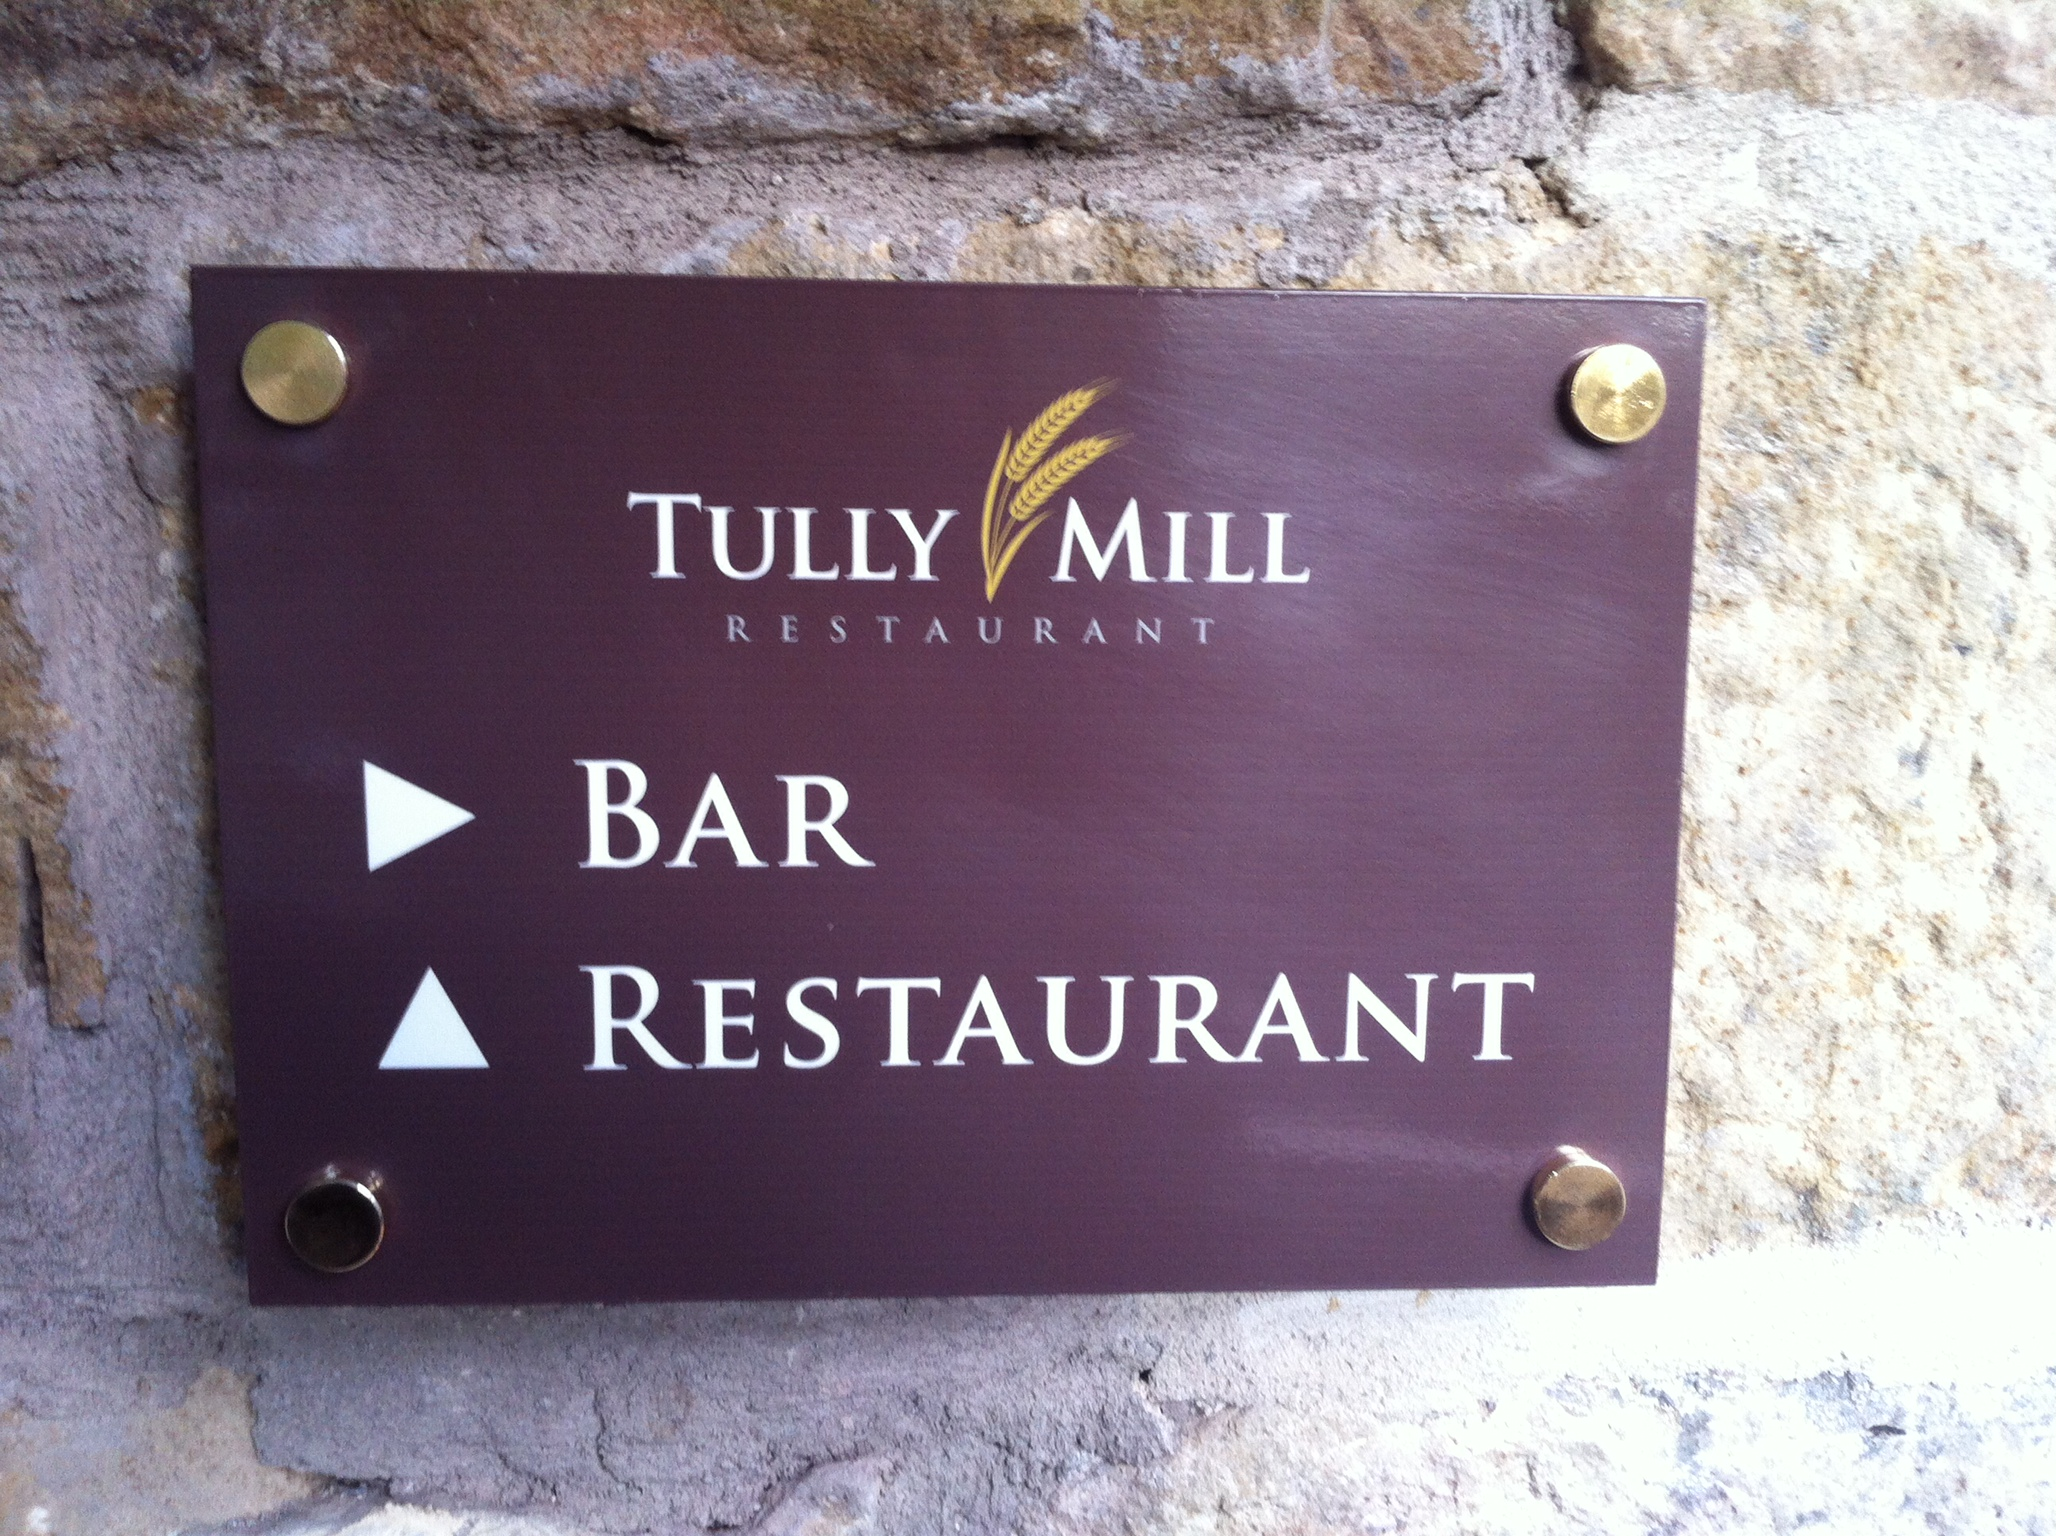 Tully Mill Restaurant